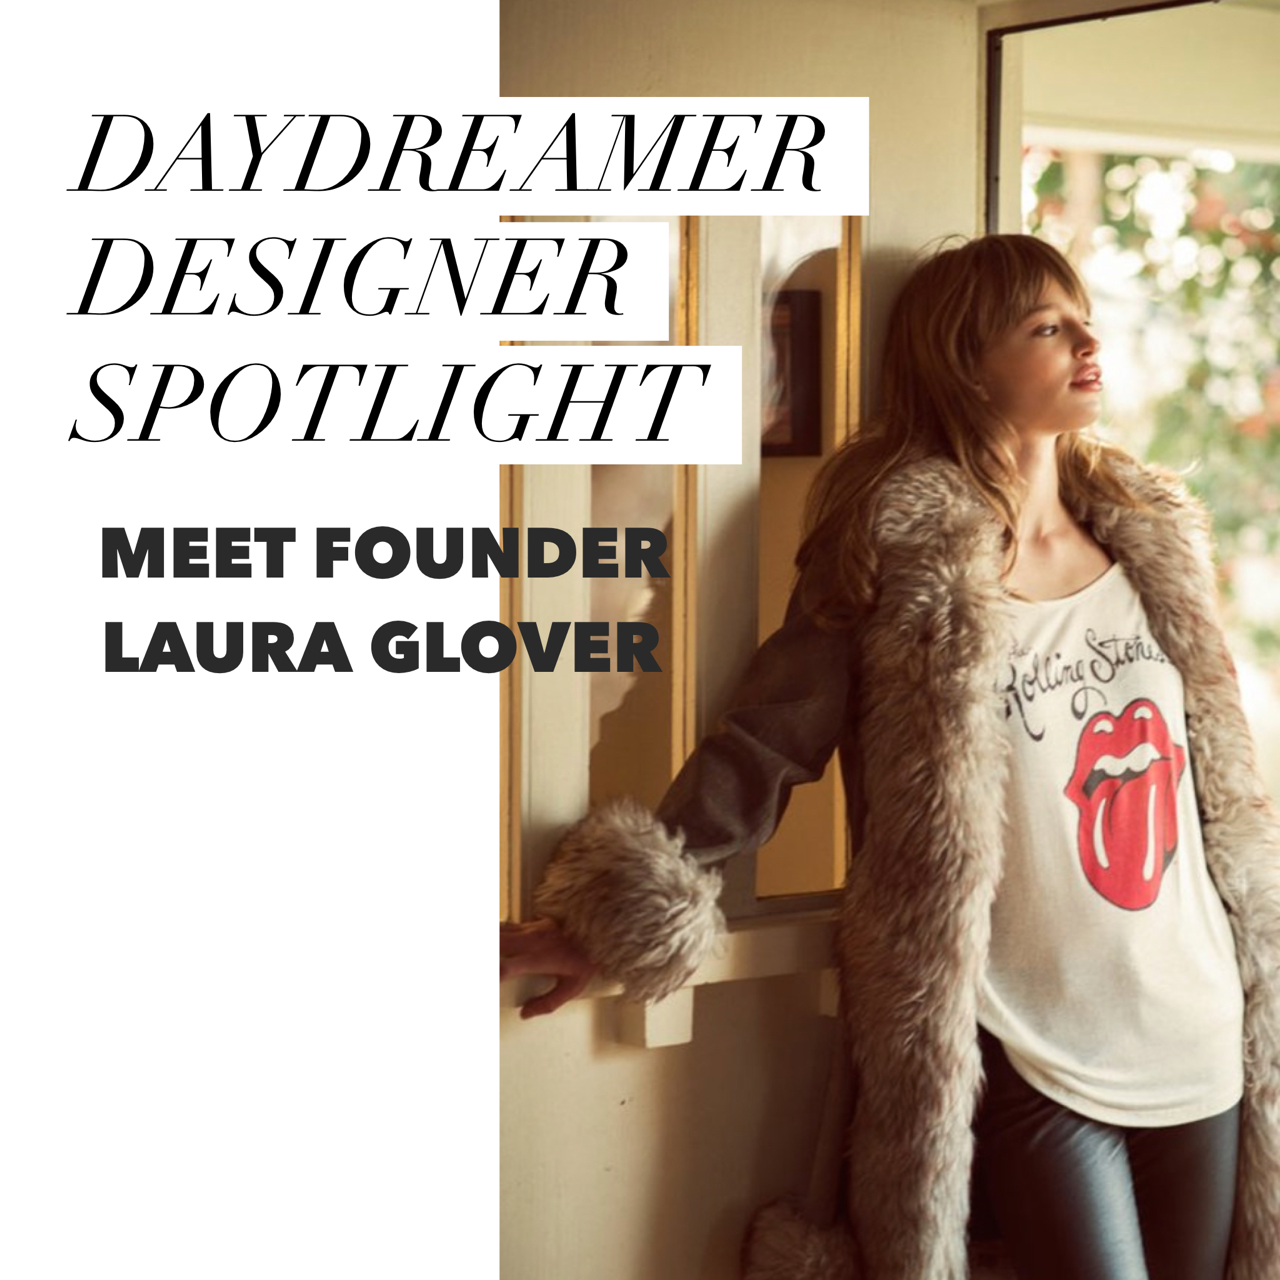 MEET DAYDREAMER DESIGNER LAURA GLOVER - amanda mills los angeles